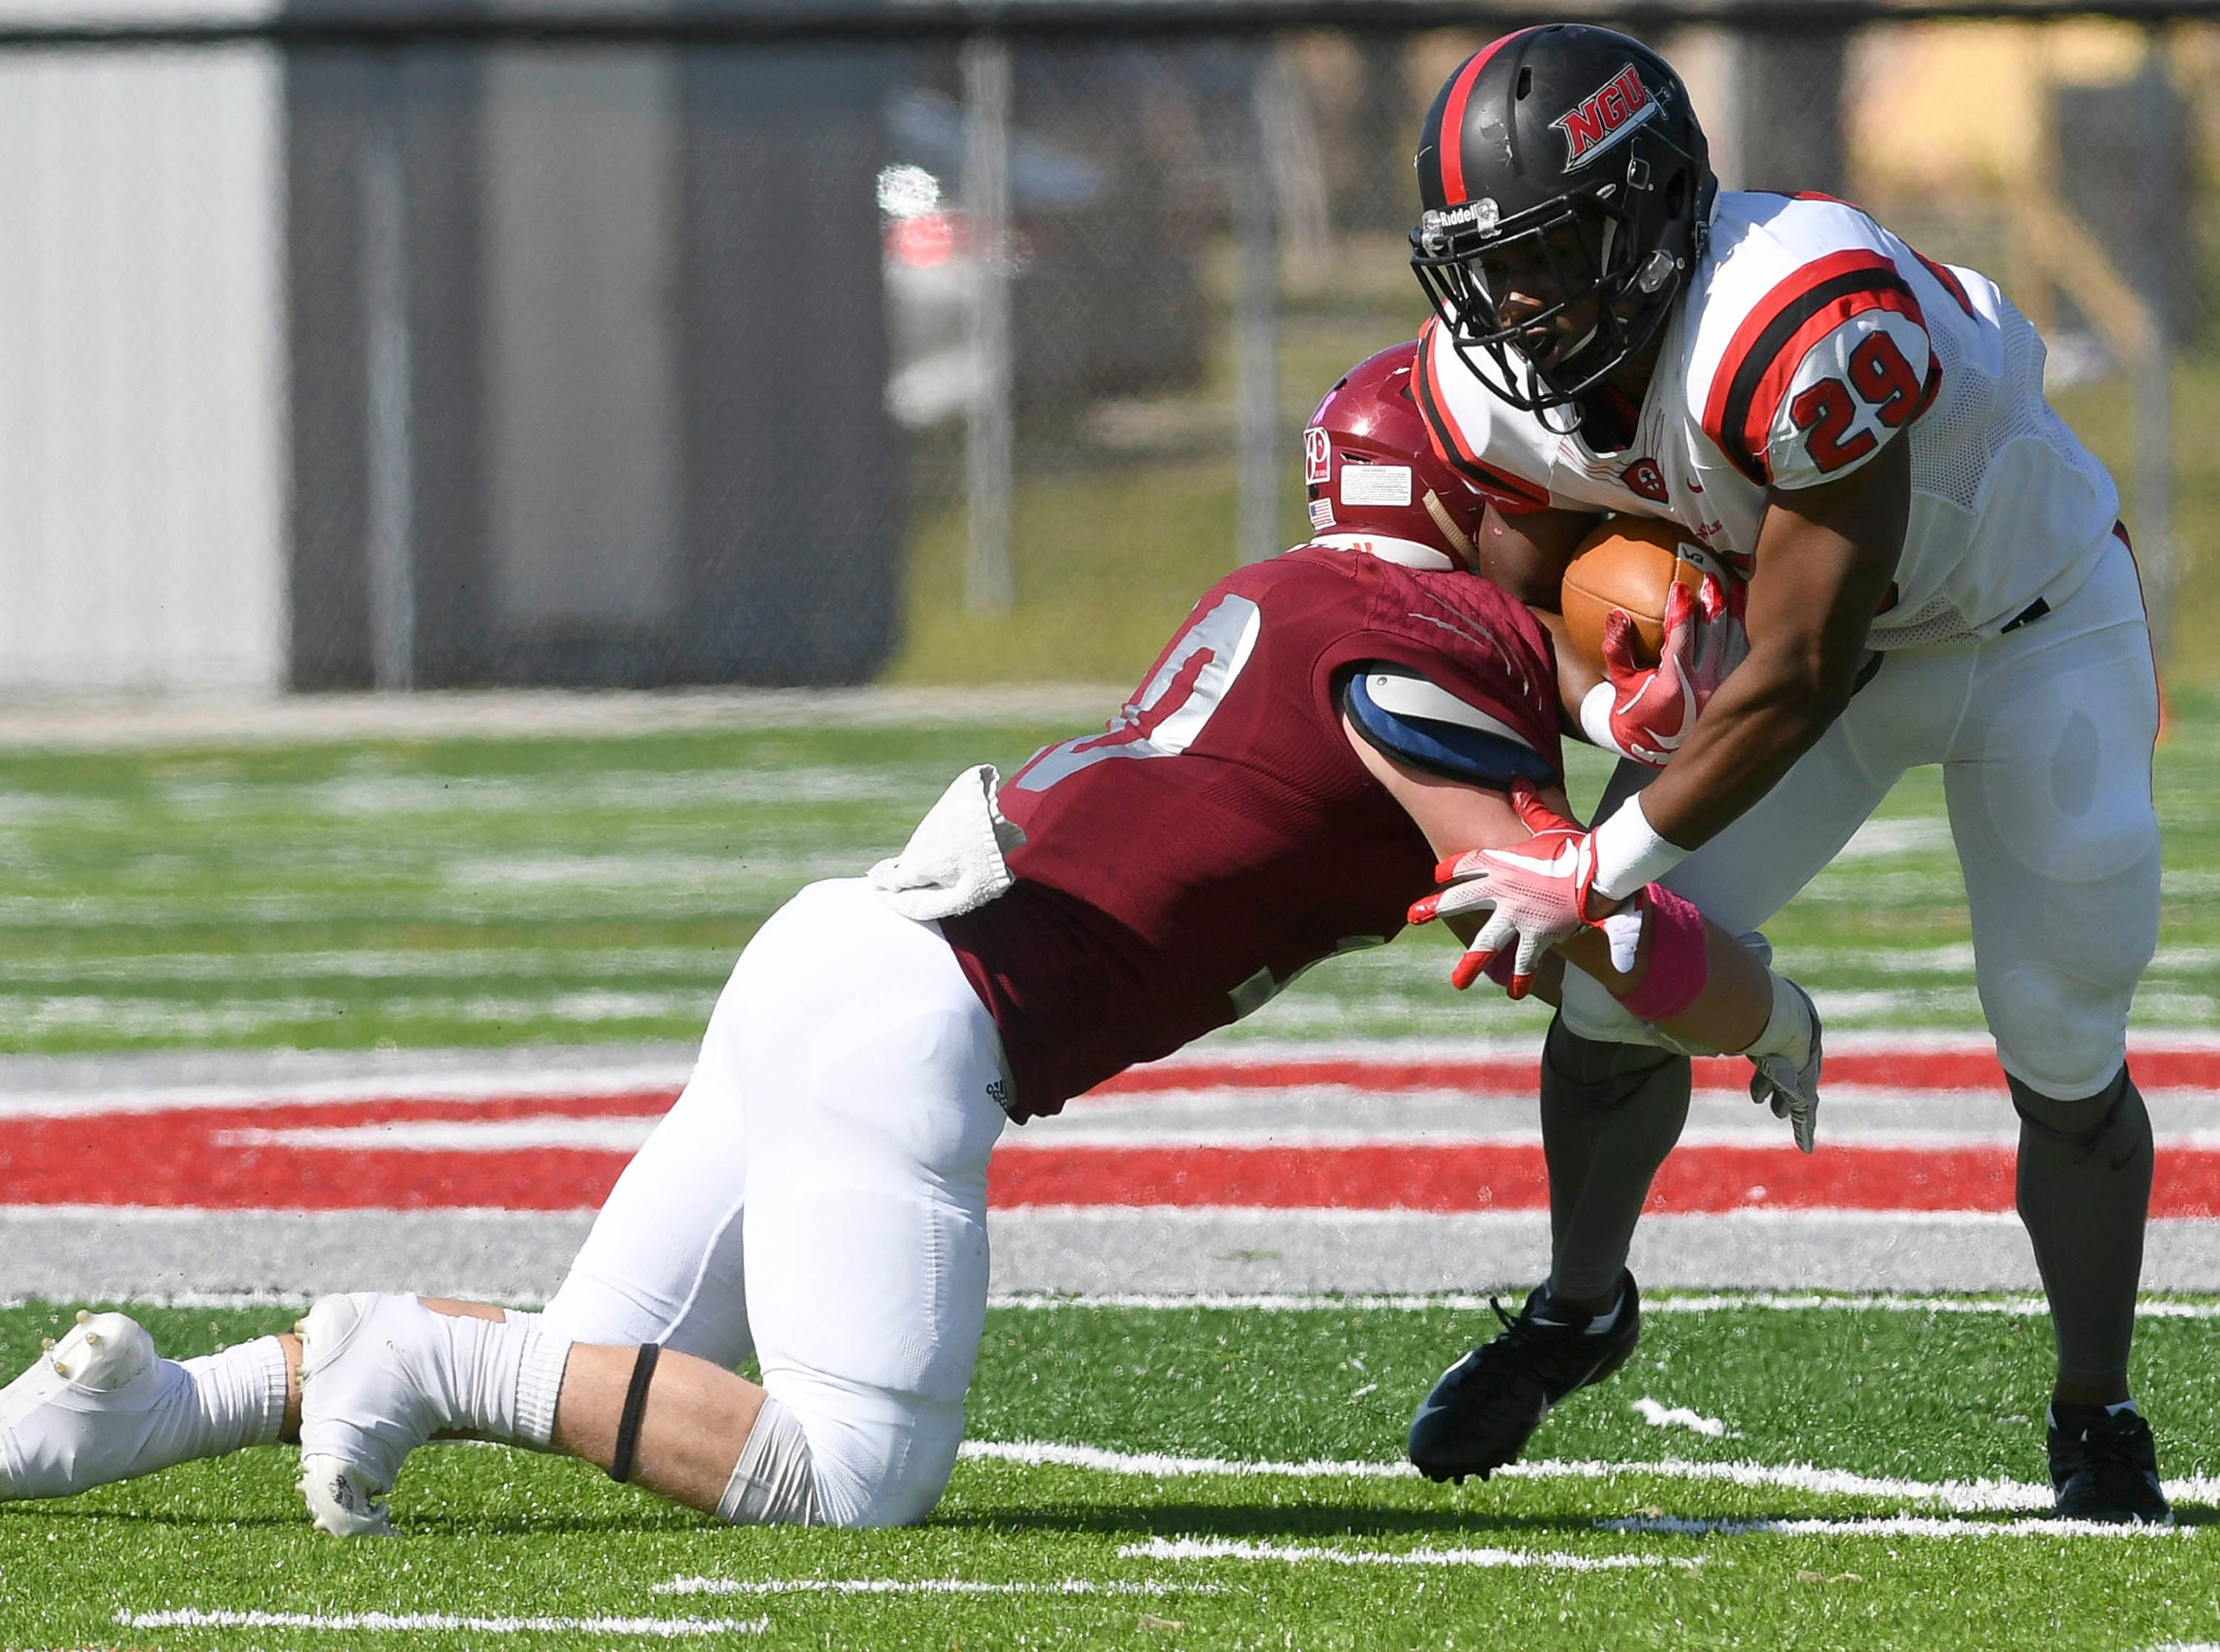 Florida Tech's Evan Thompson makes an open field tackle of North Greenville player EJ Humphrey during Saturday's game.